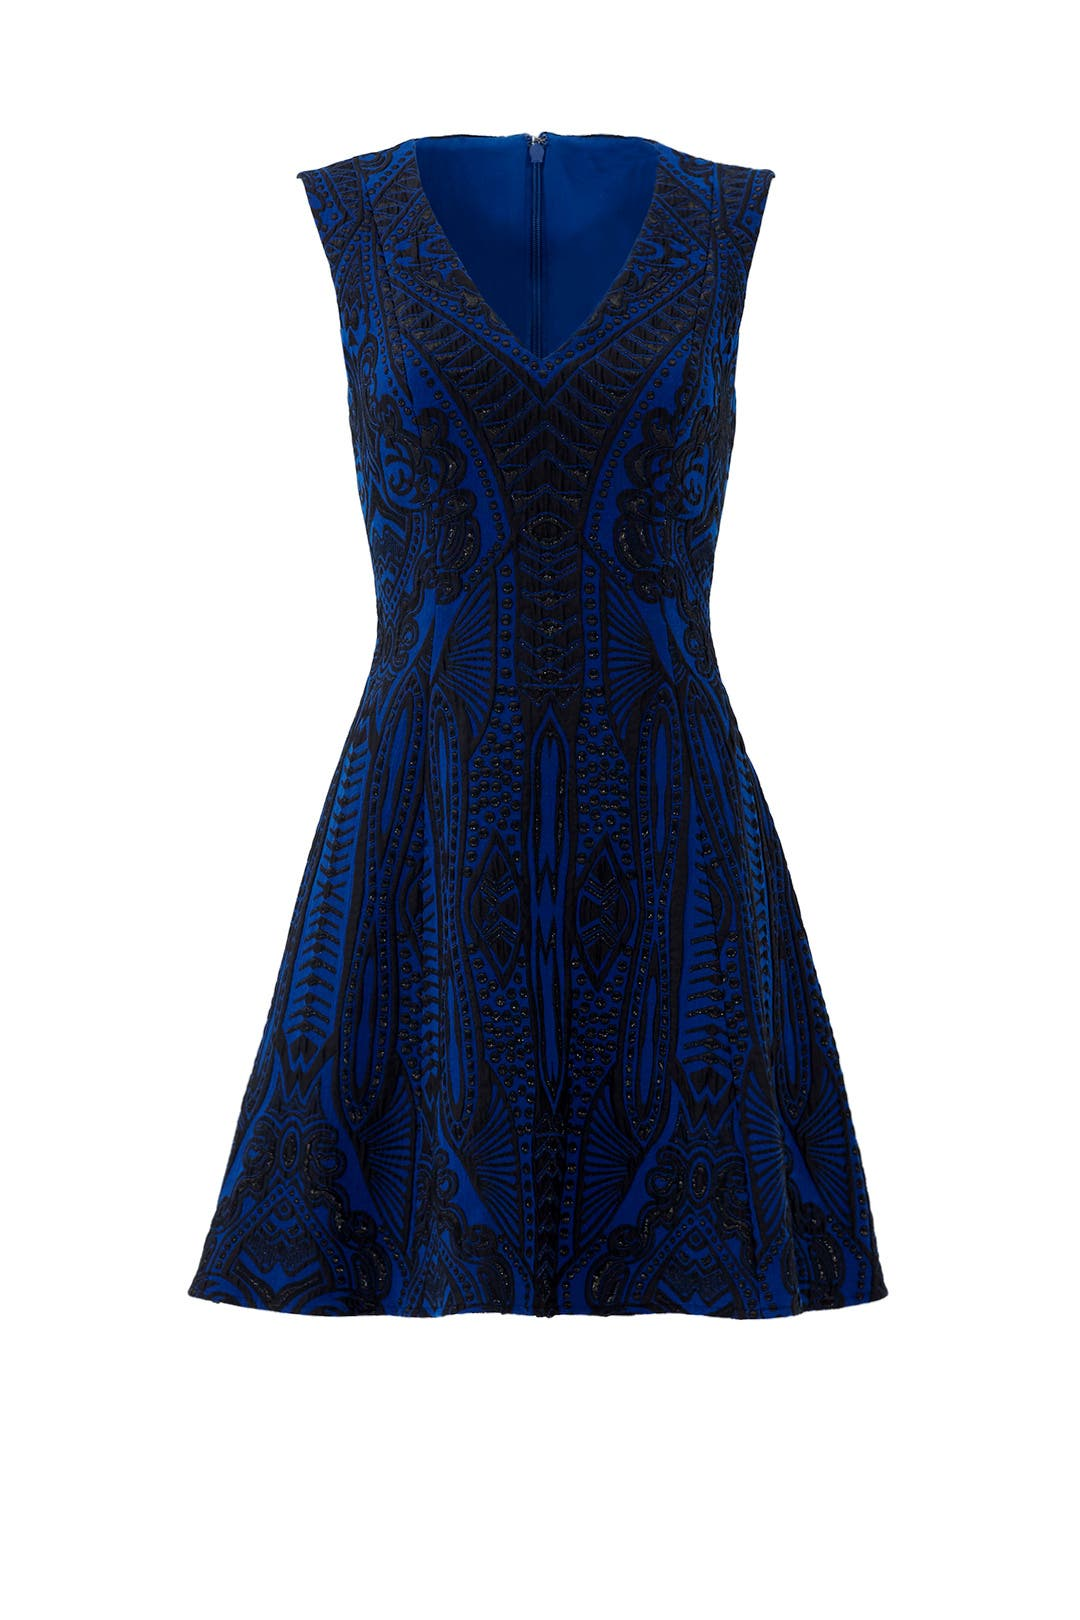 Hannelli Dress by BCBGMAXAZRIA for $40 - $70 | Rent the Runway